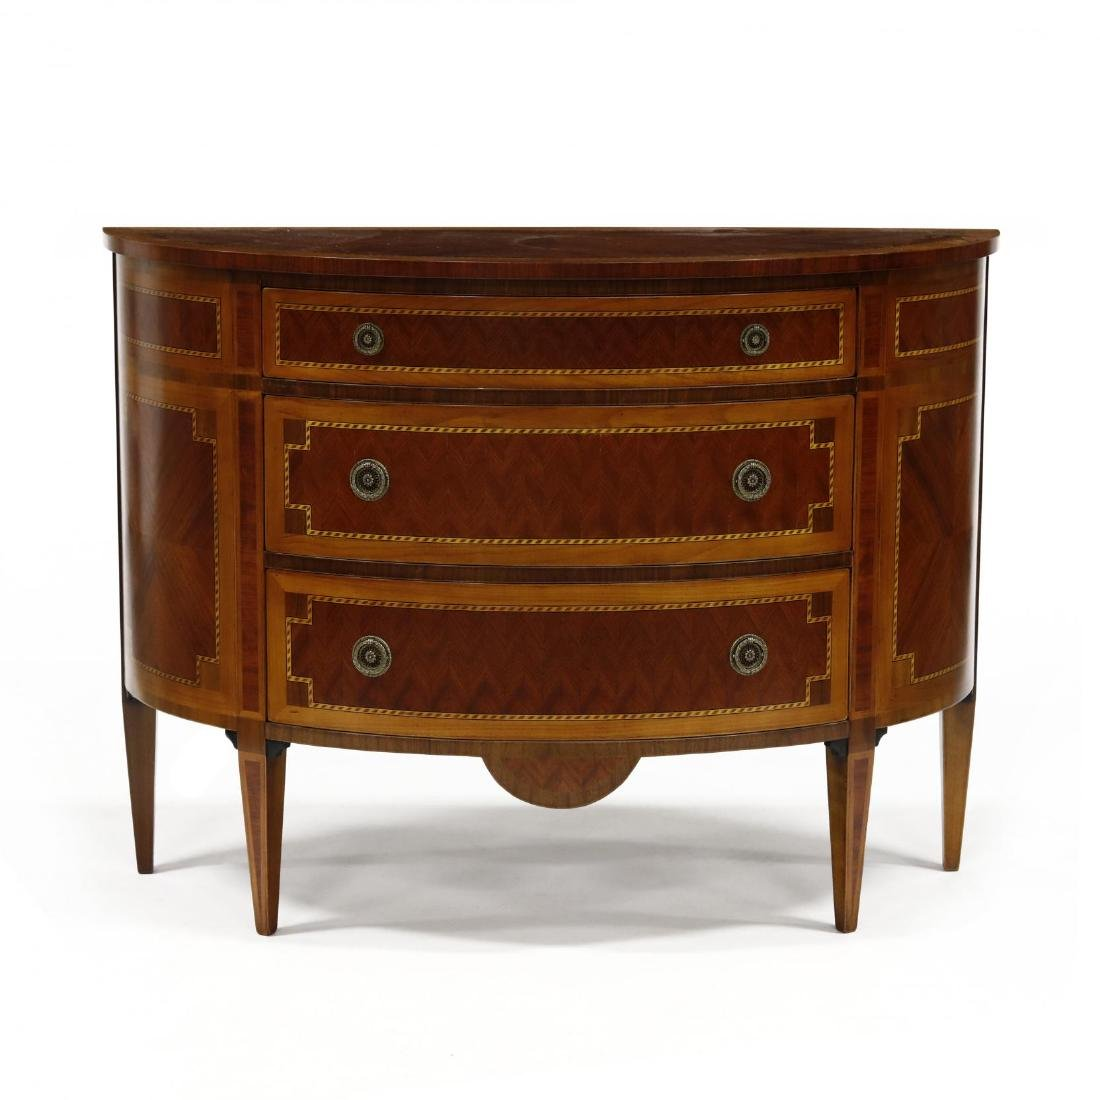 Italian Inlaid Mahogany Commode